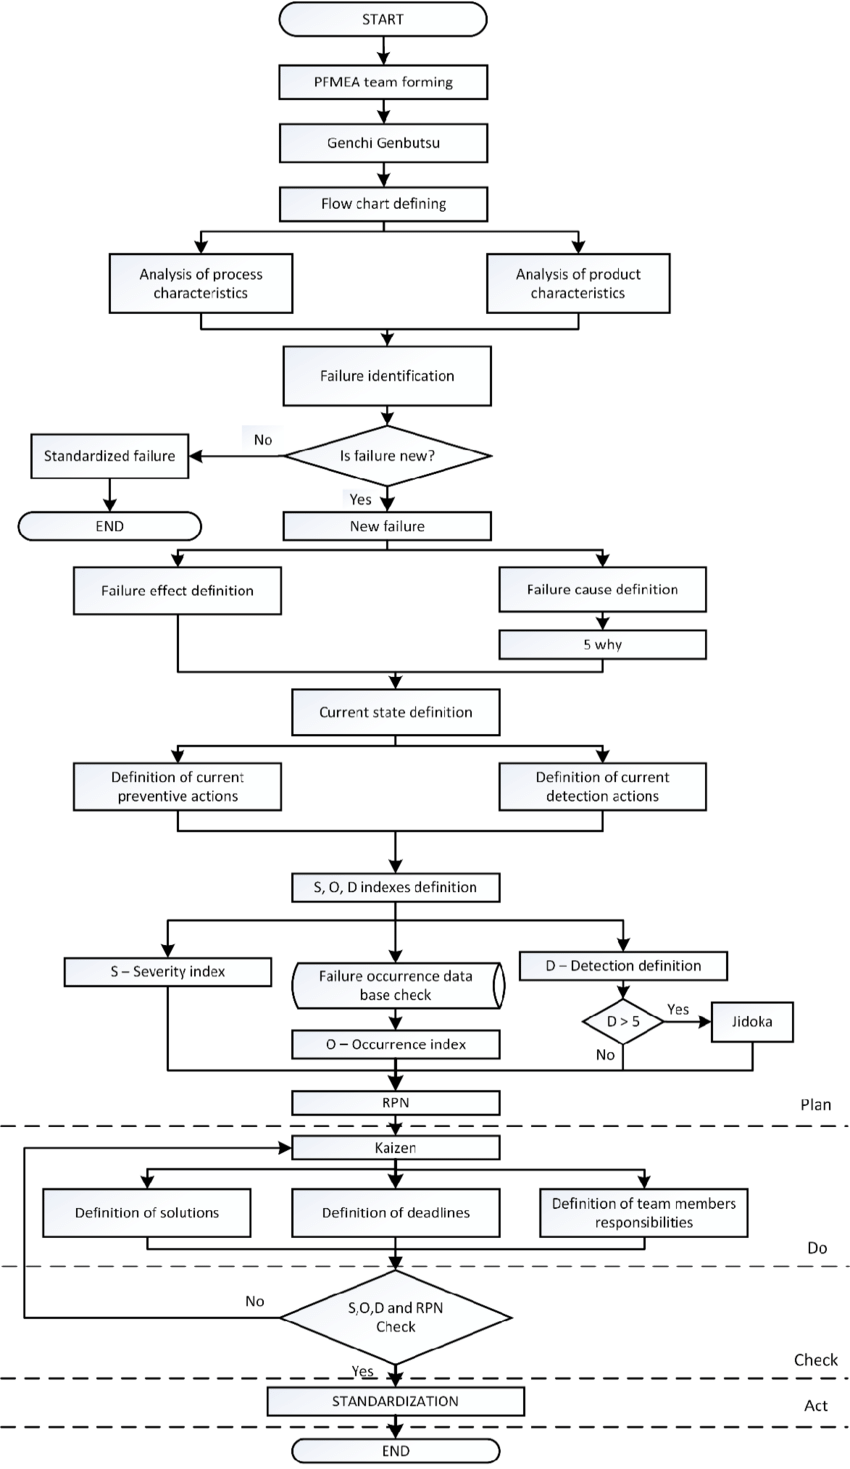 Algorithm model for PFMEA with integrated lean approach